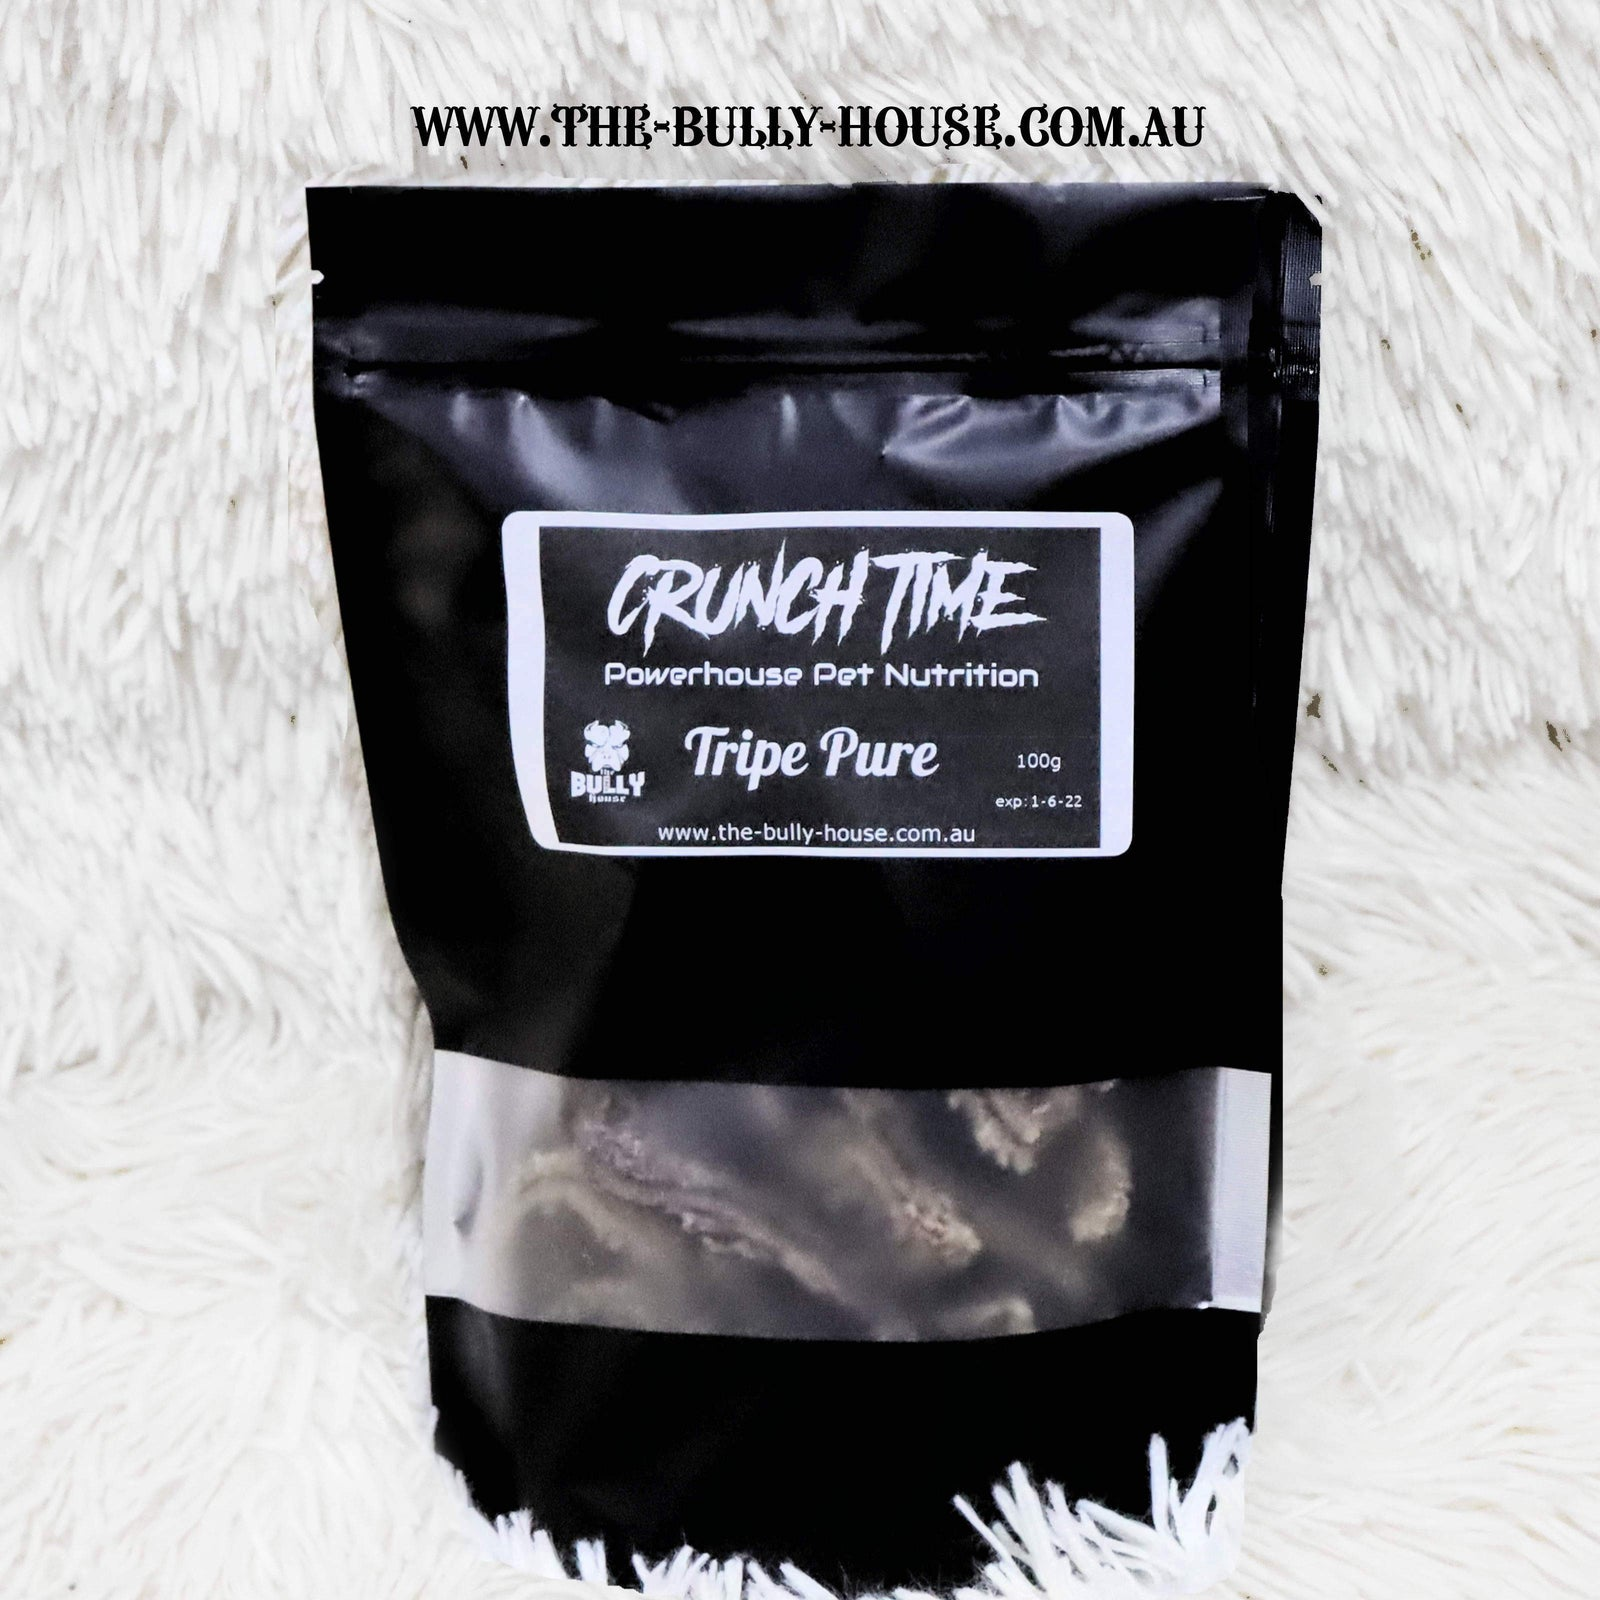 Tripe (grn) - Crunch time - Dog Treats